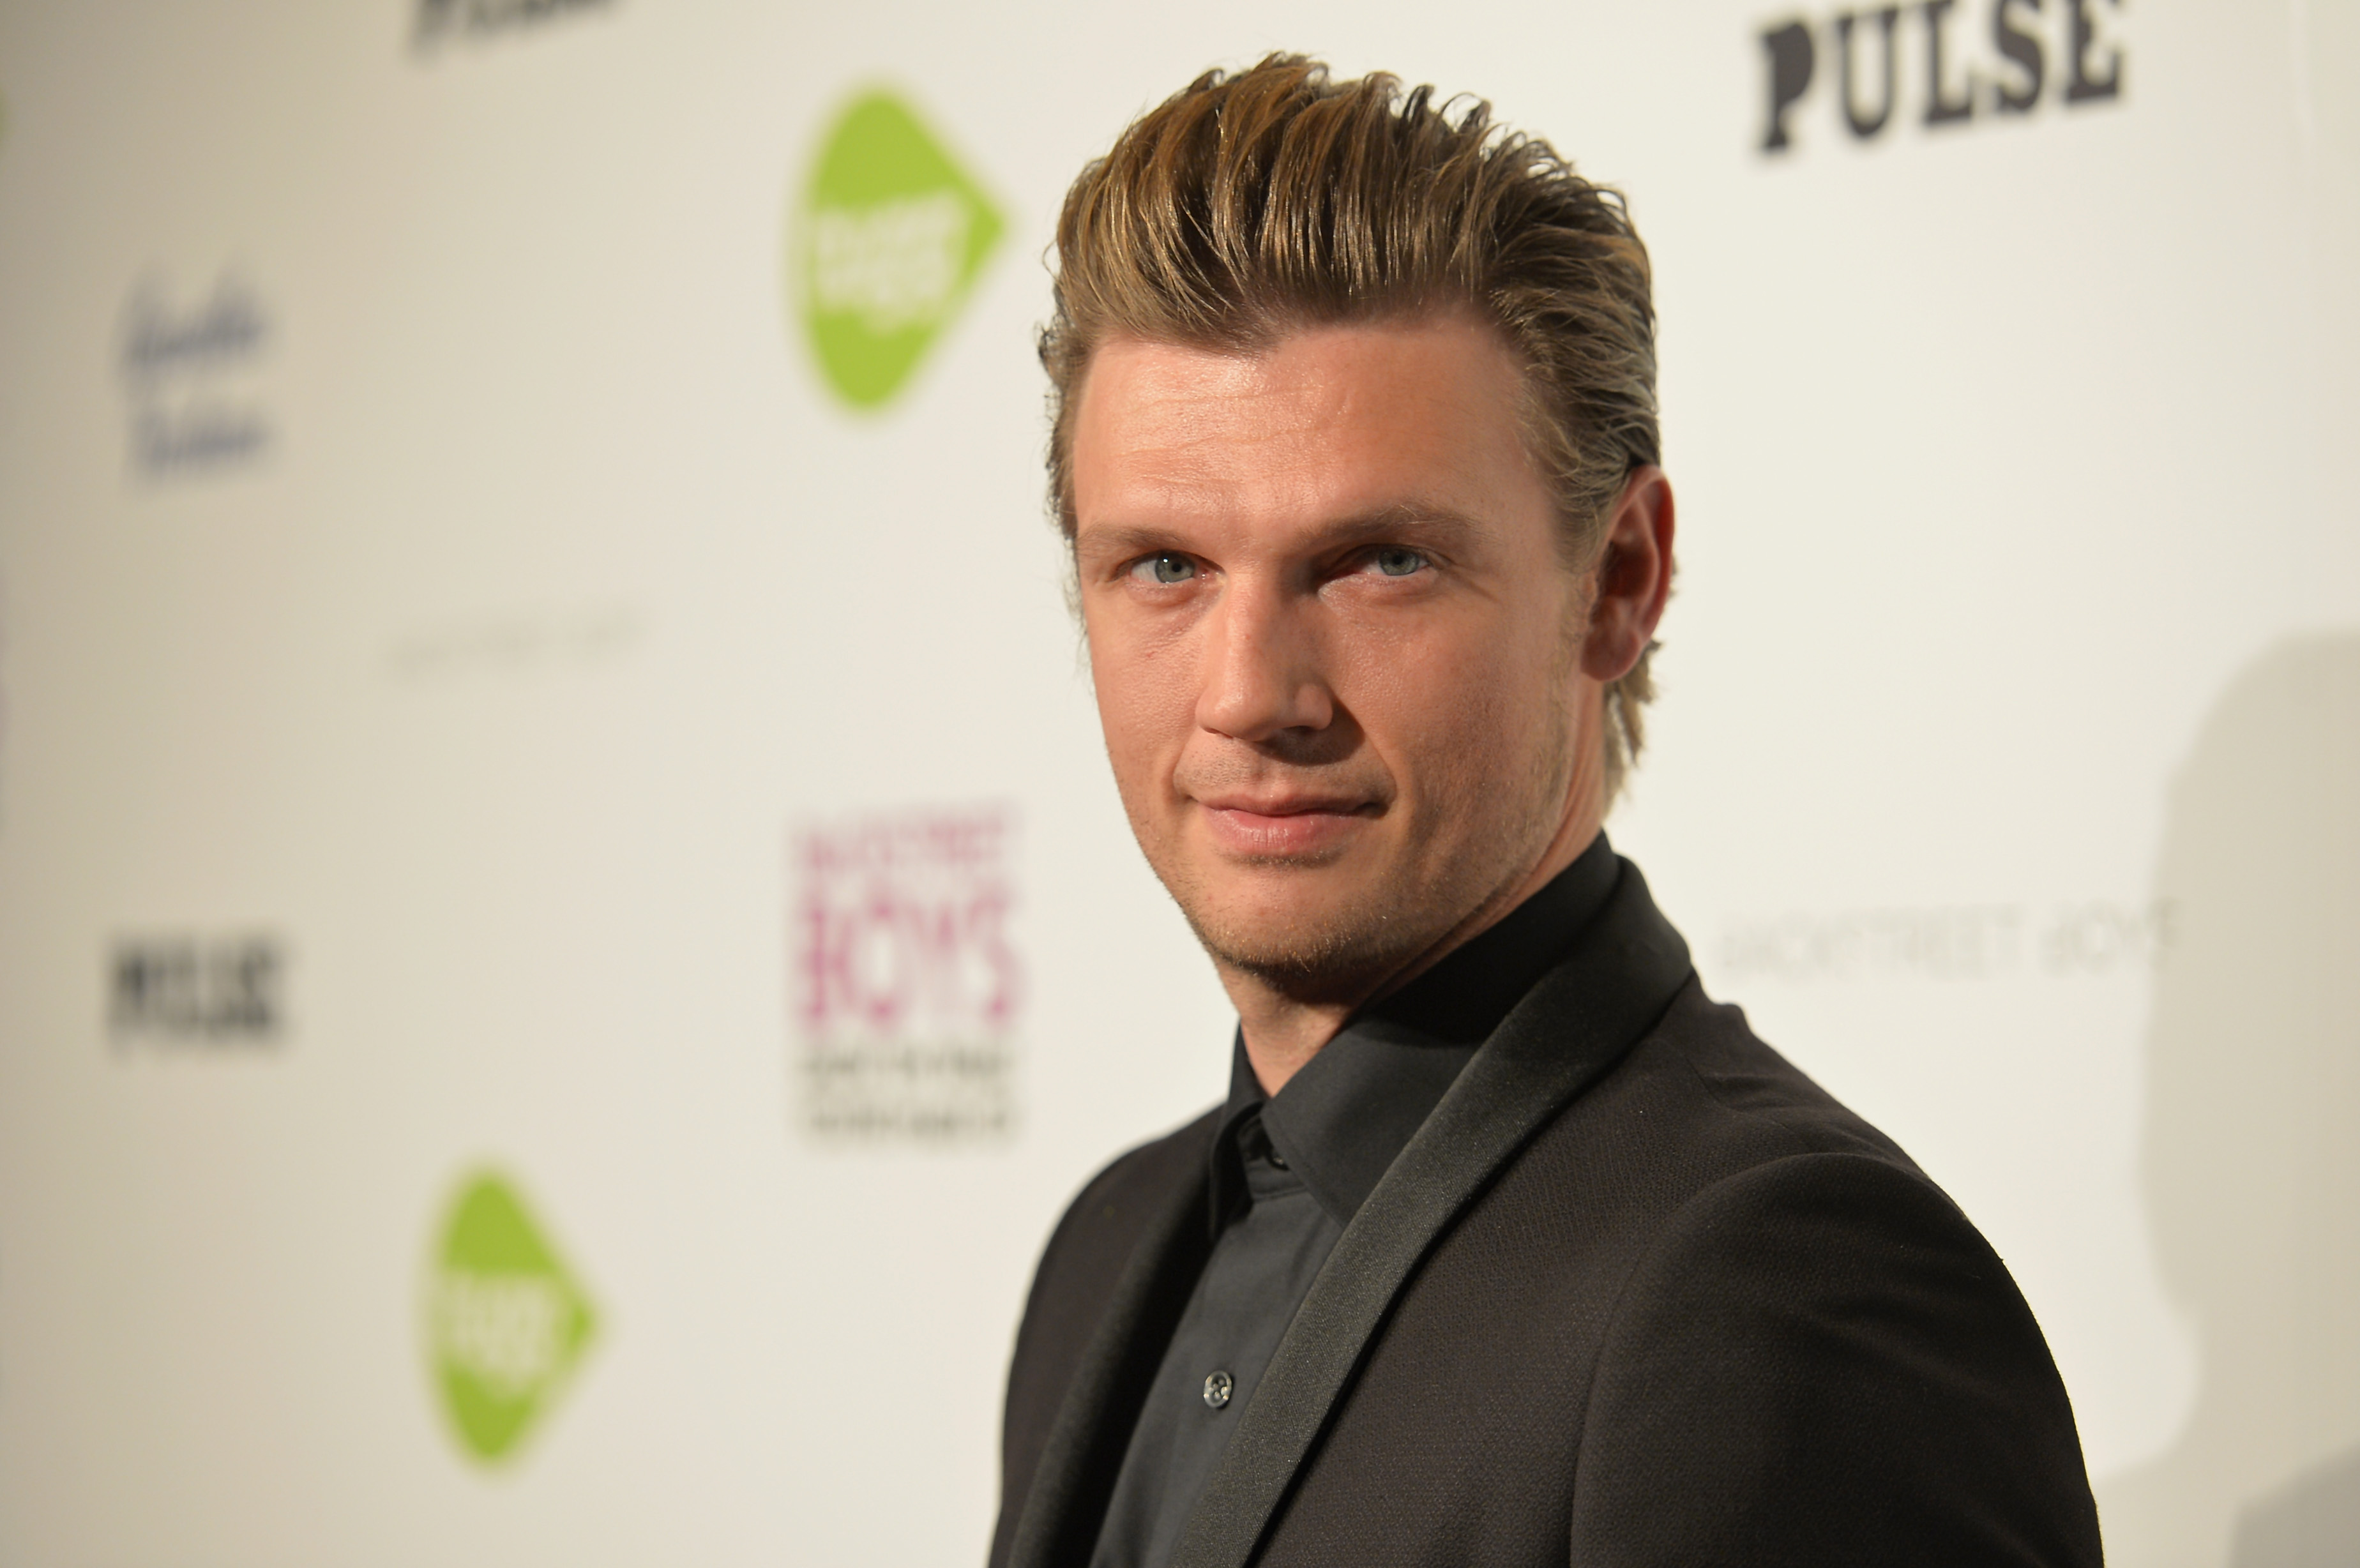 Singer Nick Carter attends the premiere of Gravitas Ventures' 'Backstreet Boys: Show 'Em What You're Made Of' at on January 29, 2015 in Hollywood, California.